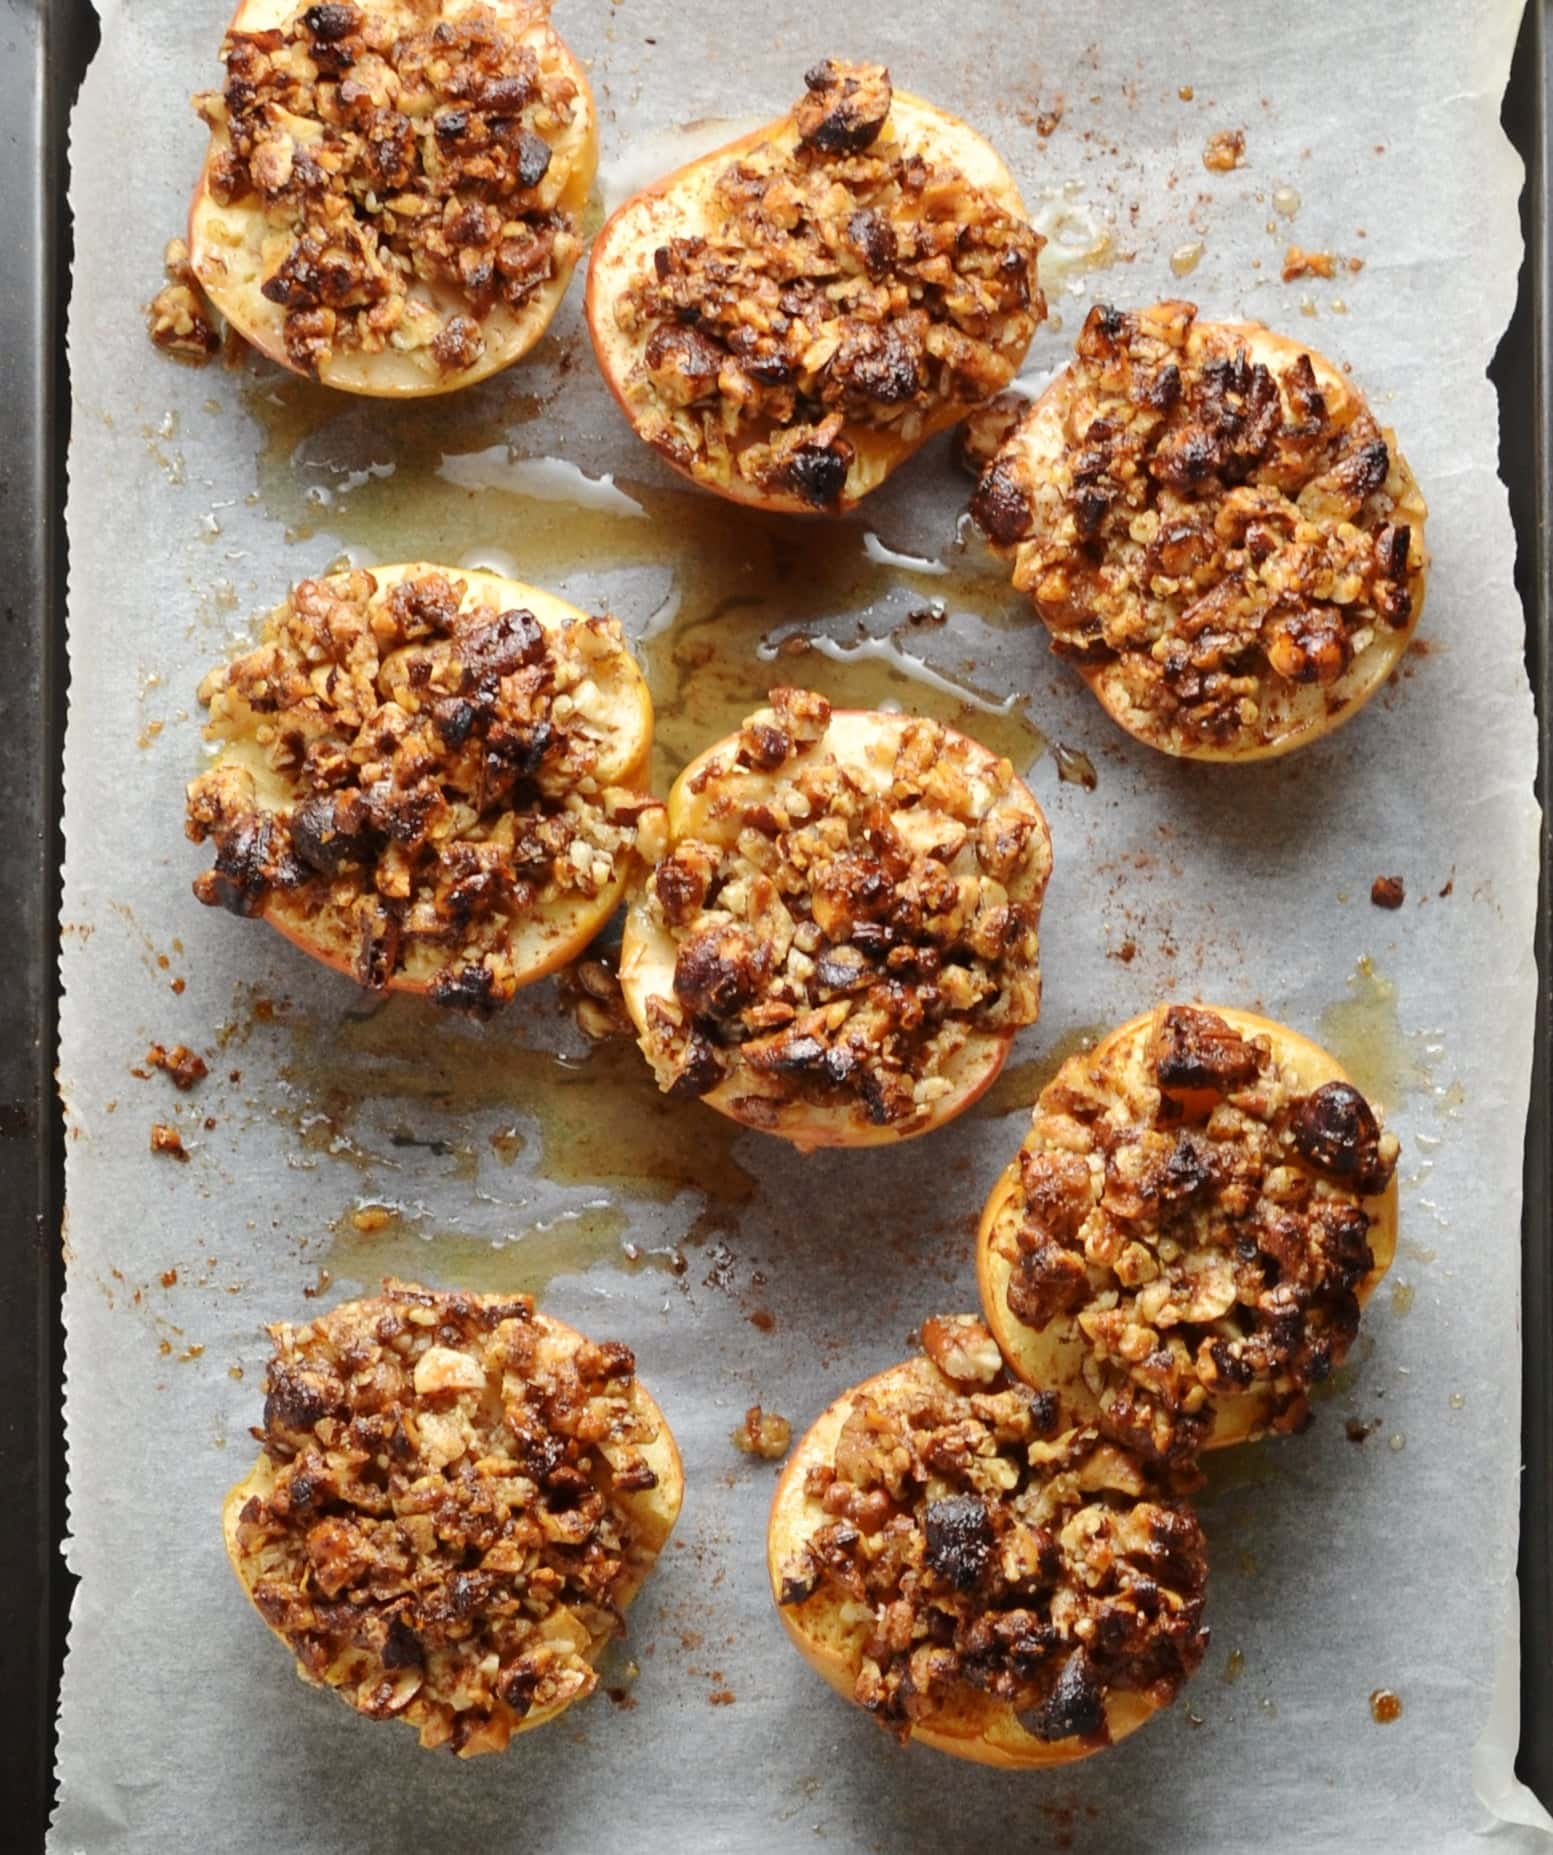 Baked apple halves with chopped pecans on top of paper.